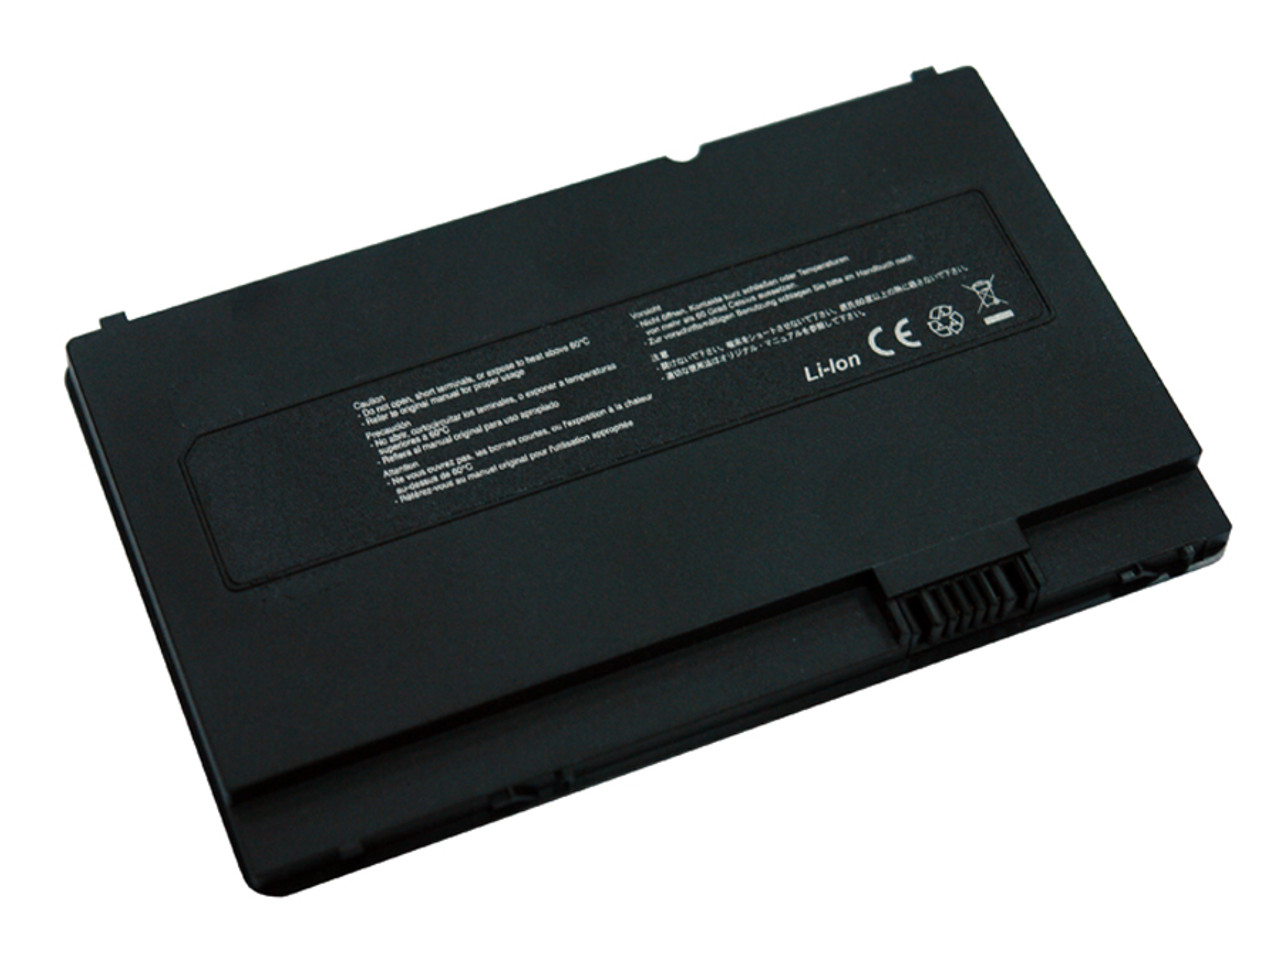 HP Mini 1000 1100; Compaq Mini 700  battery